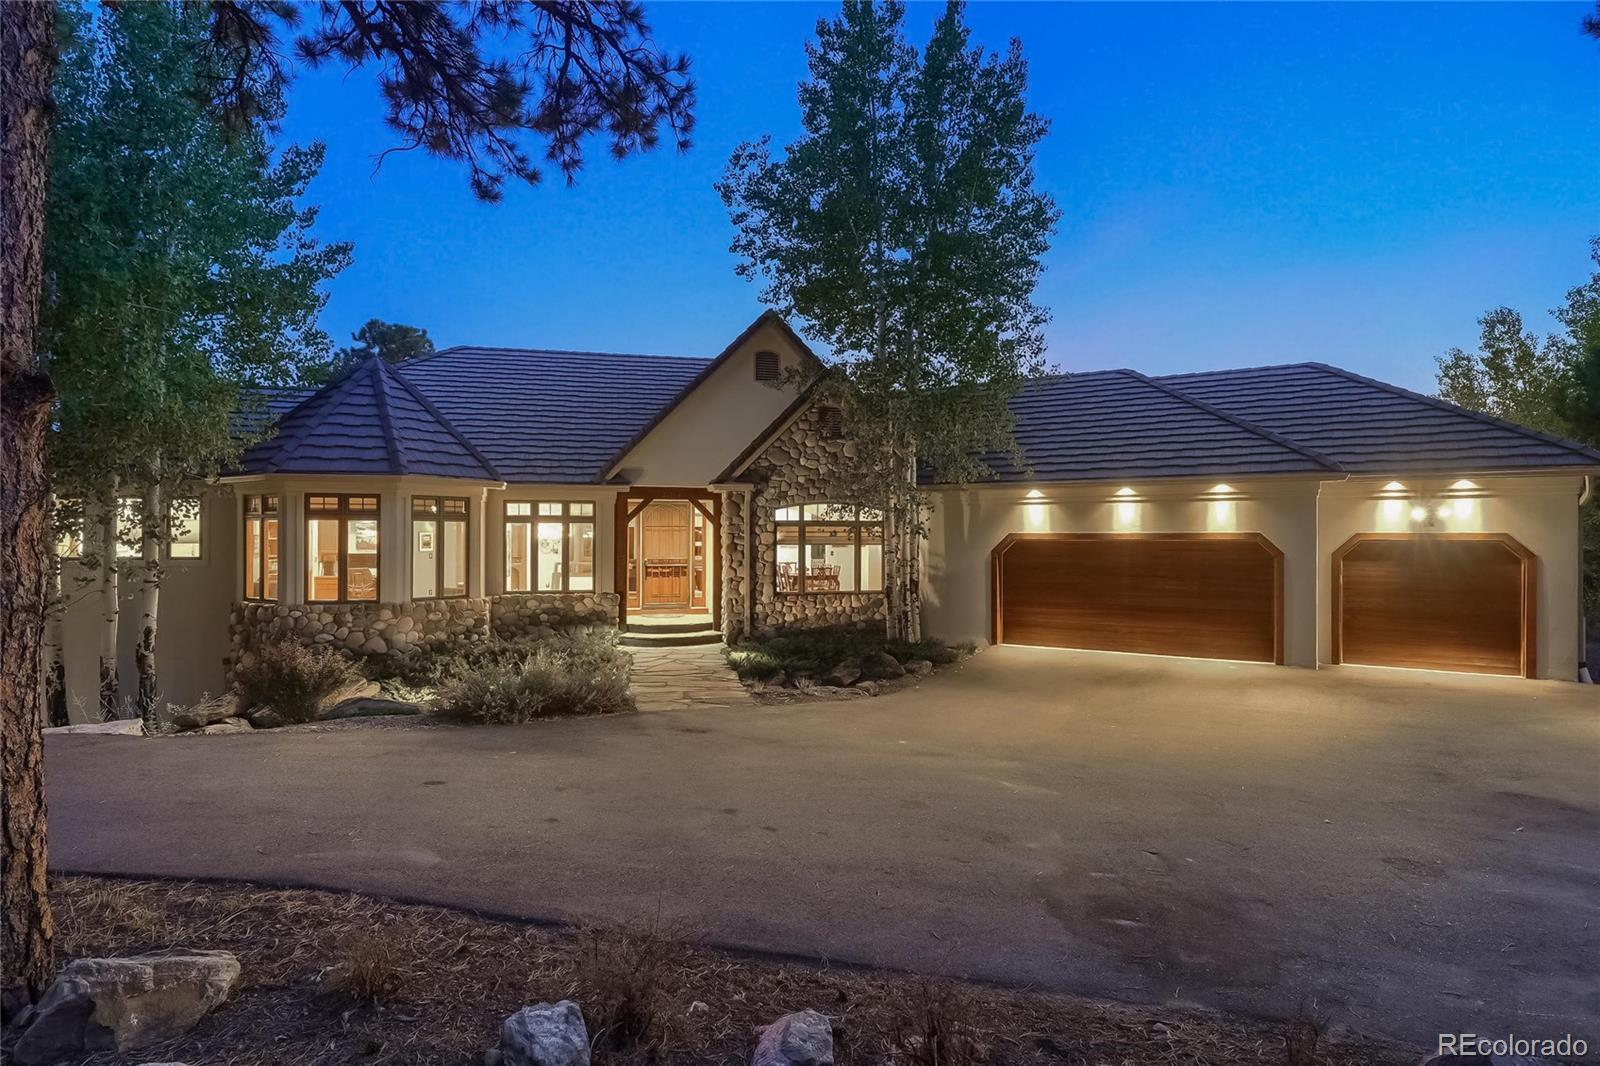 Unbelievable Custom Ranch Home Backs up to over 30 Acres of Open Space w Fantastic Mountain Views. Tradition & Style Exudes from this Beautifully Appointed Estate Nestled amongst Mature Pines & Aspens offering 4 Beds, 6 Baths, Finished Walk-out Basement, 1,400 Bottle Wine Cellar, Abundant Living Space & an Attached Over-sized 844 SqFt 3 Car Garage. Elegant Features of this Remodeled Upgraded Home begin w a Bright Vaulted Living Room enhanced w Wood Beams, Wall of Windows framing Amazing Mountain Views, Gorgeous Hardwood Floors on Main Level, Wet Bar, 2 Fireplaces & Multiple Deck Access; Points for Fabulous indoor/outdoor Entertainment. Walk-out Basement has Expansive Sunlit Family Room w Great Vistas, Gas Fireplace, Wet Bar & an Exquisite Custom Mahogany Wine Room. Step outside onto a Spacious Lower level, no drip Covered Deck; Perfect for Relaxing & Entertaining. Main Level Great Room has Fireplace & Upper Deck access. Gourmet Kitchen has Slab Granite Counters, Huge Quartz Island w Breakfast Bar, SS Appliances includes New Double Ovens, Gas Cooktop, Beautiful Cabinetry, Pantry, Sun filled Breakfast Nook w Access to Deck w gated access to Spiral Staircase connecting Upper & Lower Maintenance Free Decks. Spacious Main Level Office has Built-ins & Desk. Master Retreat w Sitting Area & Walk-in Closets. Luxurious 5-Piece Master Bath has Freestanding Air Jet Soaking Tub, Large Steam Shower, Water Closet, Tile Floor. 3 more Sun Lit Beds in Lower Level all w Beautiful en Suite Baths & Bonus Room, Ideal as a Workout Room. Main Level has Large Laundry w Cabinets, Counter Space & Utility Sink, Powder Room & Mud Room. New Stucco Exterior. Xeriscape Landscaping & Hardwired Landscape Lighting. 3 Flagstone Patios in Back, 1 w Gas Firepit, lower has Pergola, & 3rd near deck has 50 Amp Electrical Panel (supports future hot tub). Only a Few Minutes to Shopping, Dining & Trails. Close to Golf & Evergreen Lake. Just 30 minutes to Denver. See Virtual 3-D & Aerial Tours.